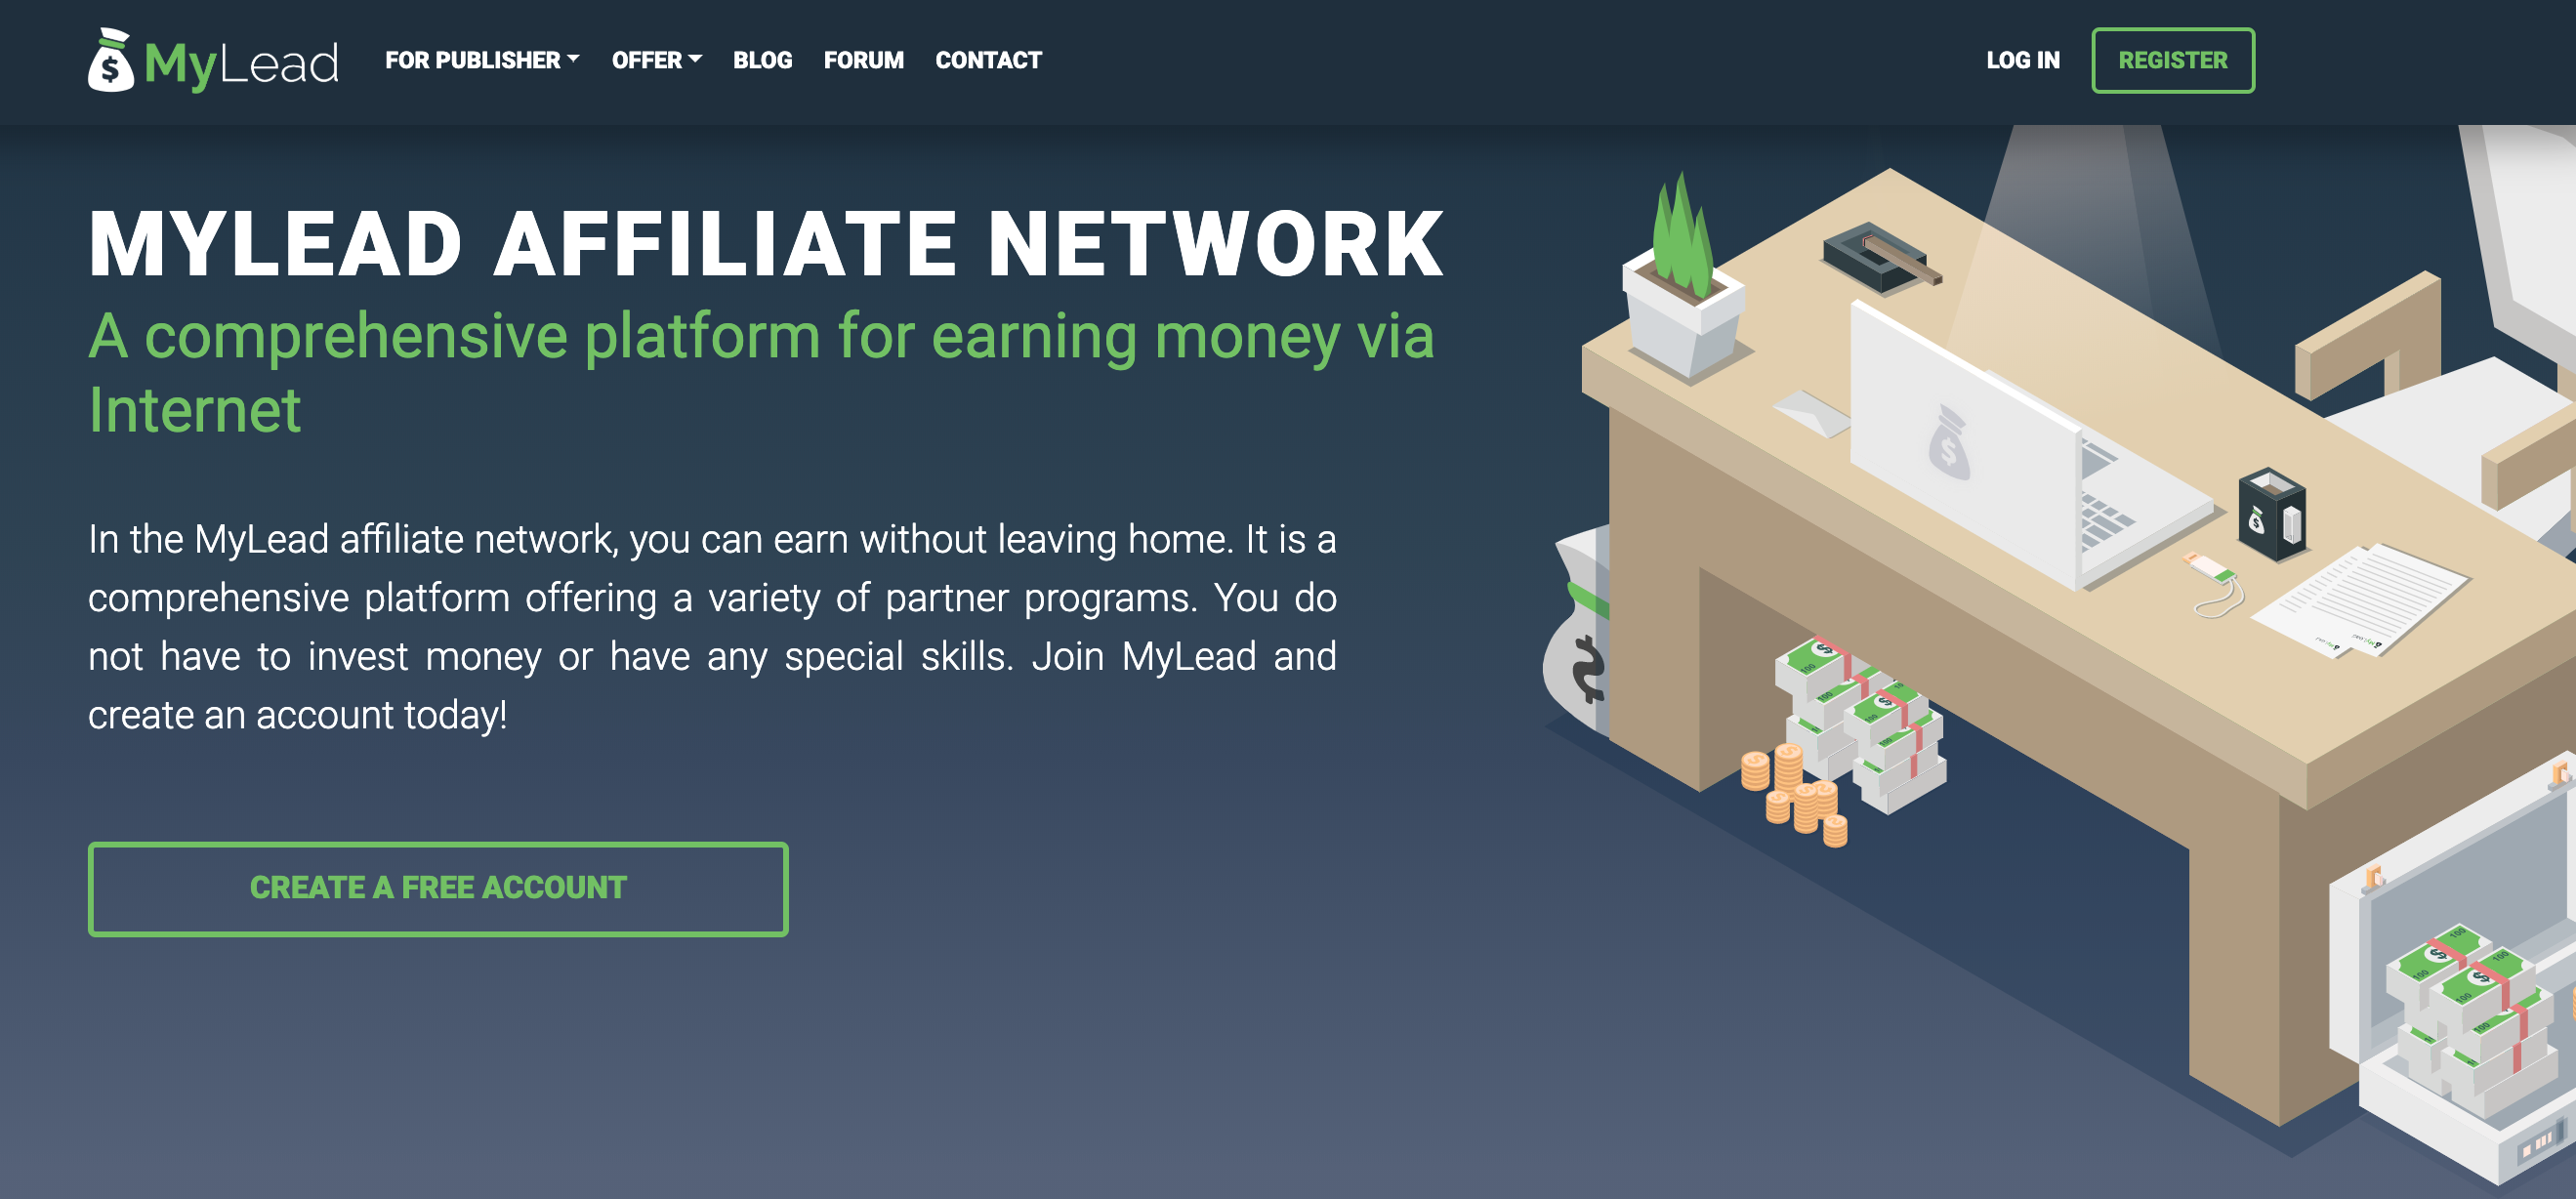 MyLead- The Best Affiliate Network